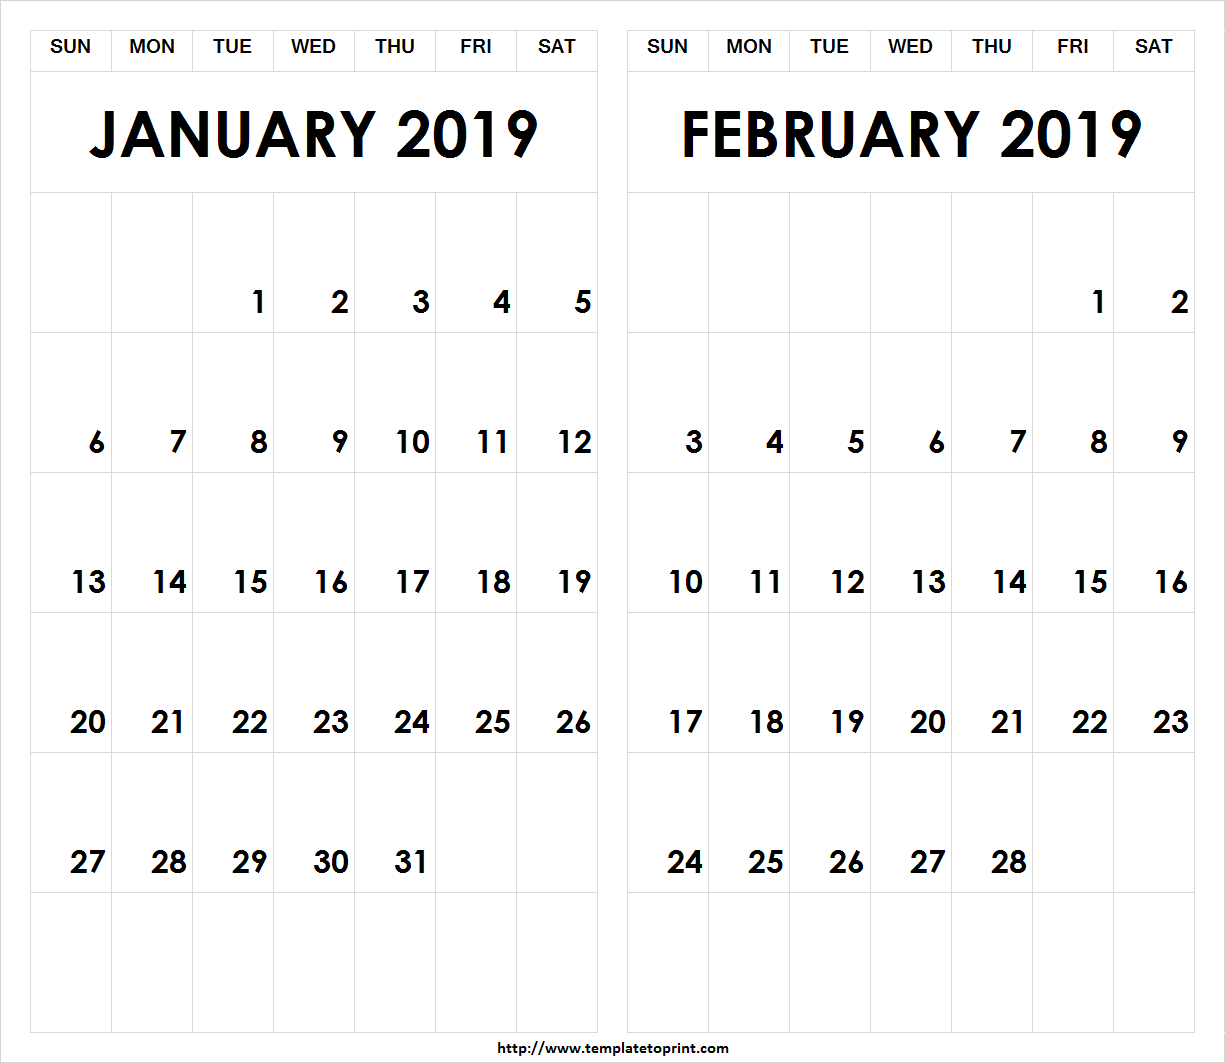 Printable-2019-January-February-Calendar » Template To Print Calendar 2019 Jan Feb